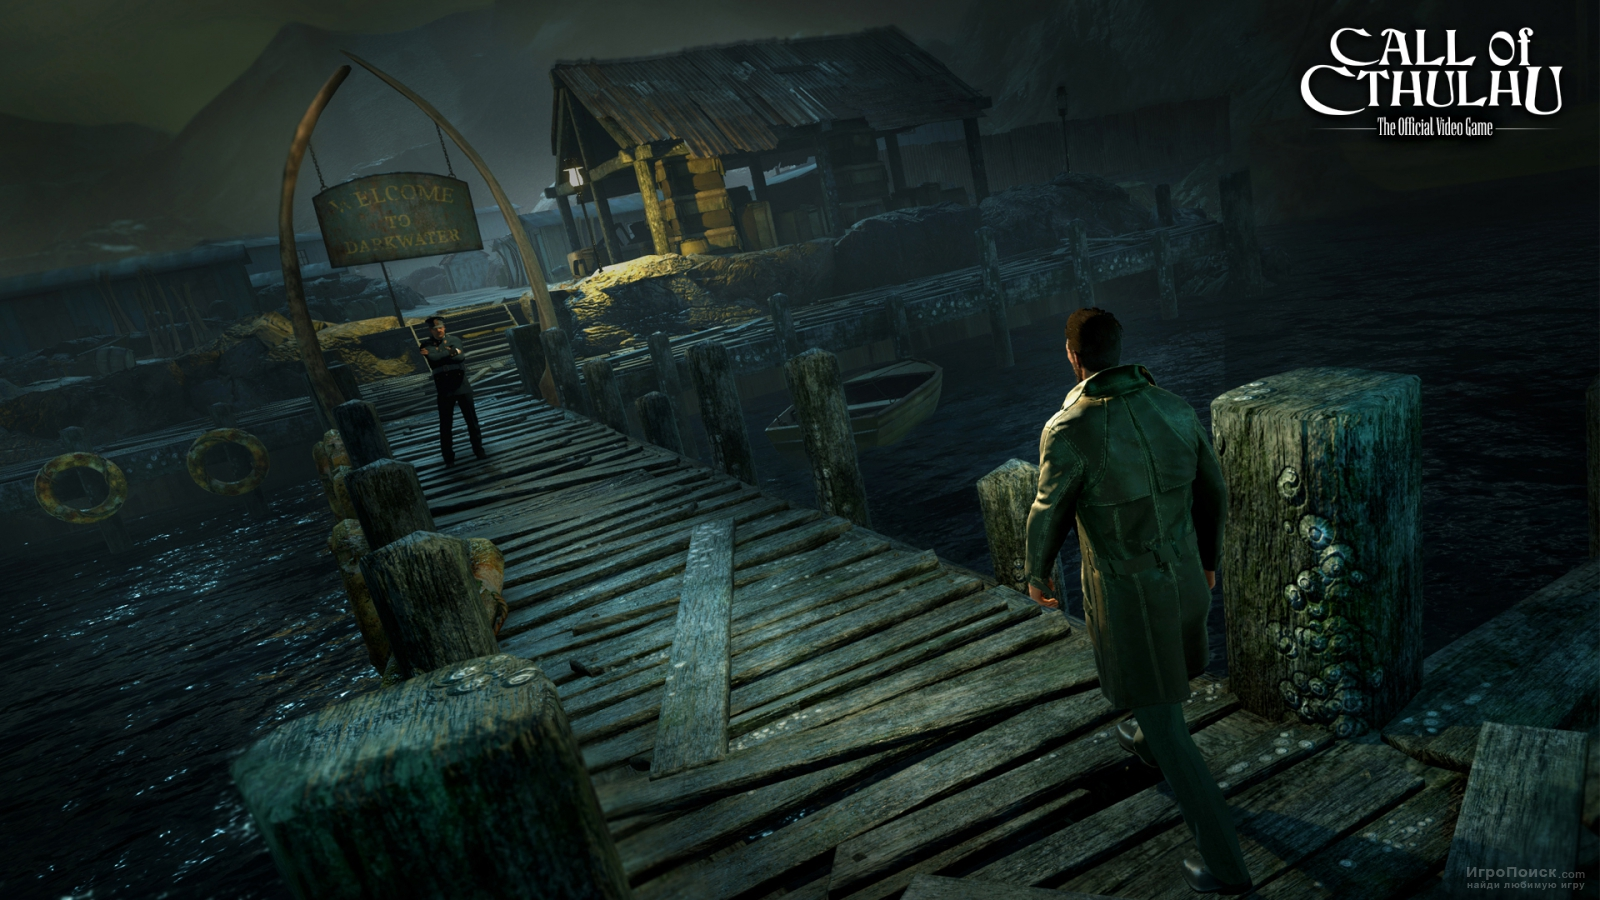 Скриншот к игре Call of Cthulhu: The Official Video Game